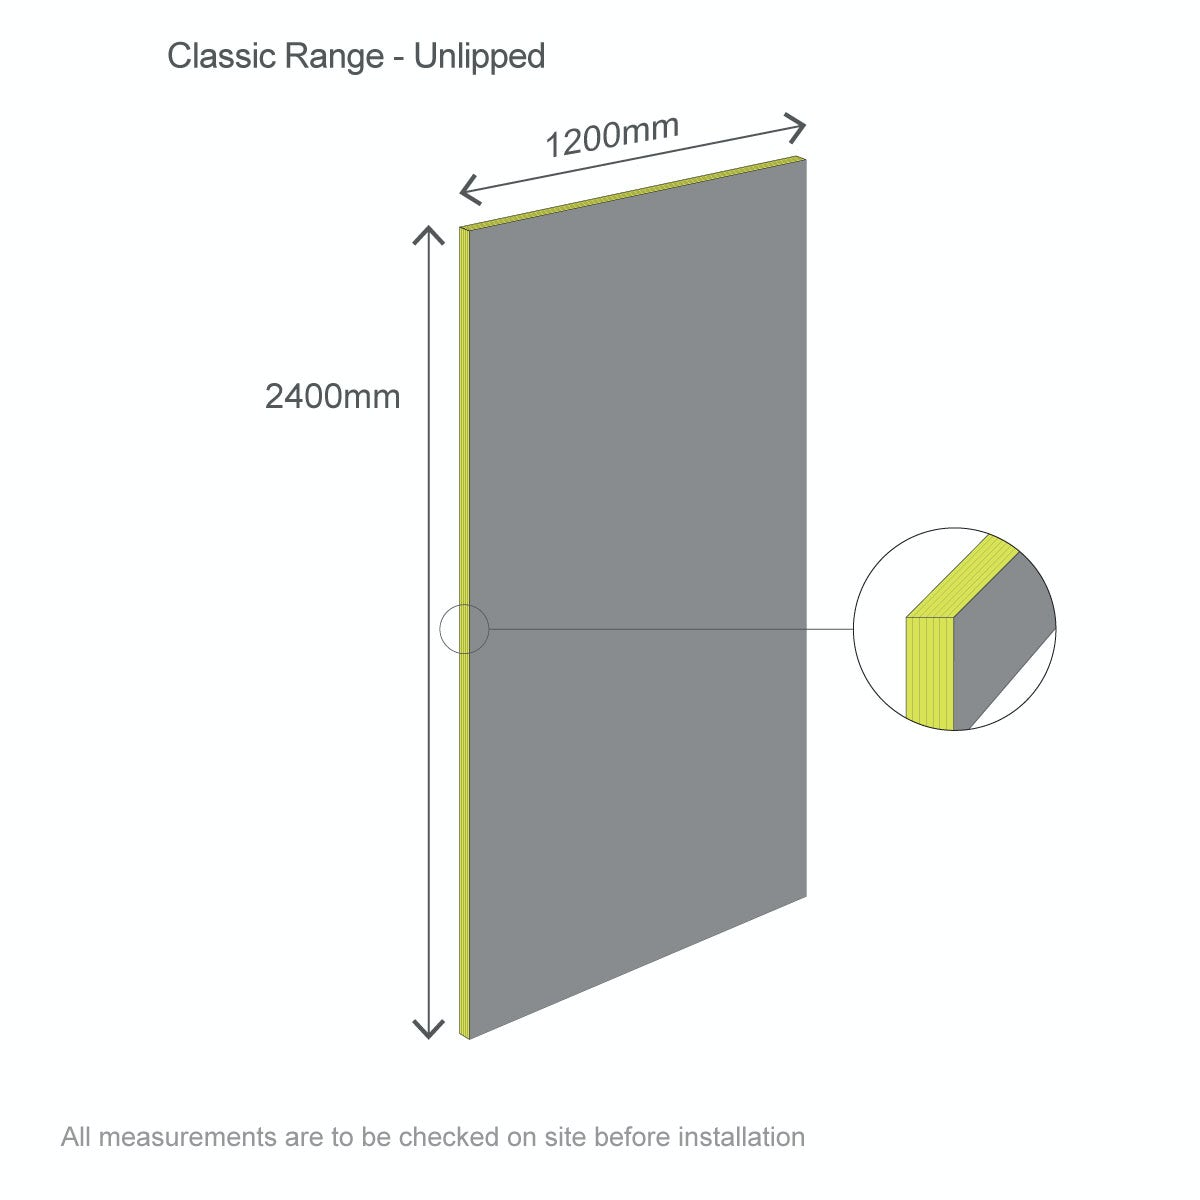 Dimensions for Multipanel Classic Beige Eiger unlipped shower wall panel 2400 x 1200